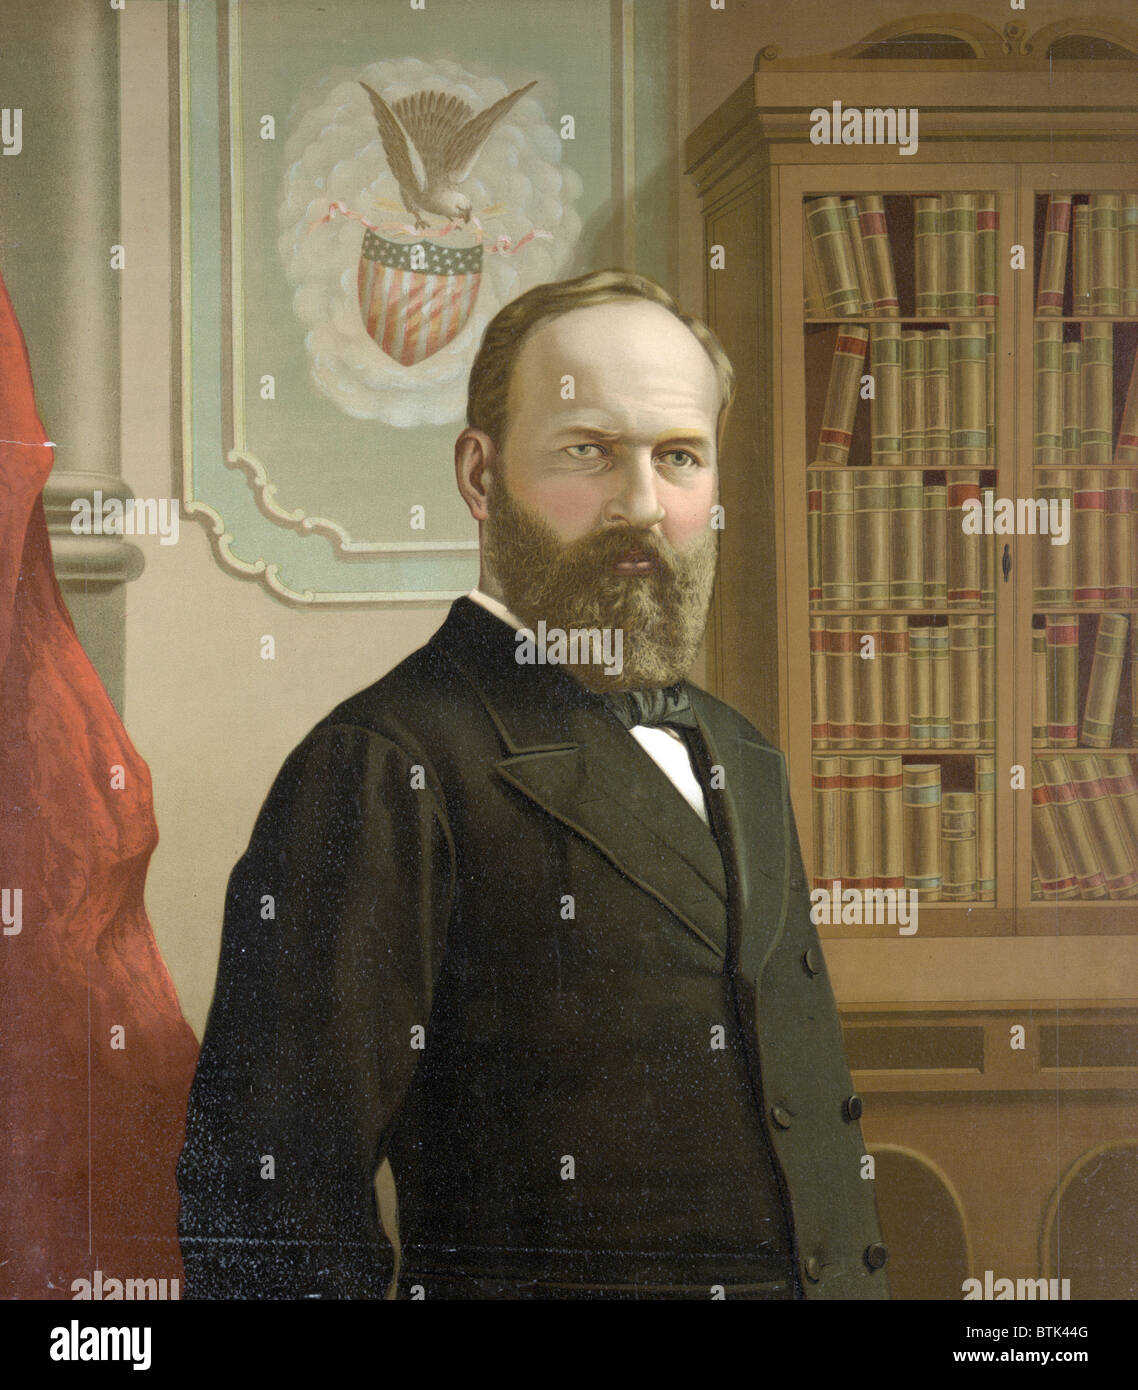 The Late President James A Garfield Color Lithograph Ca